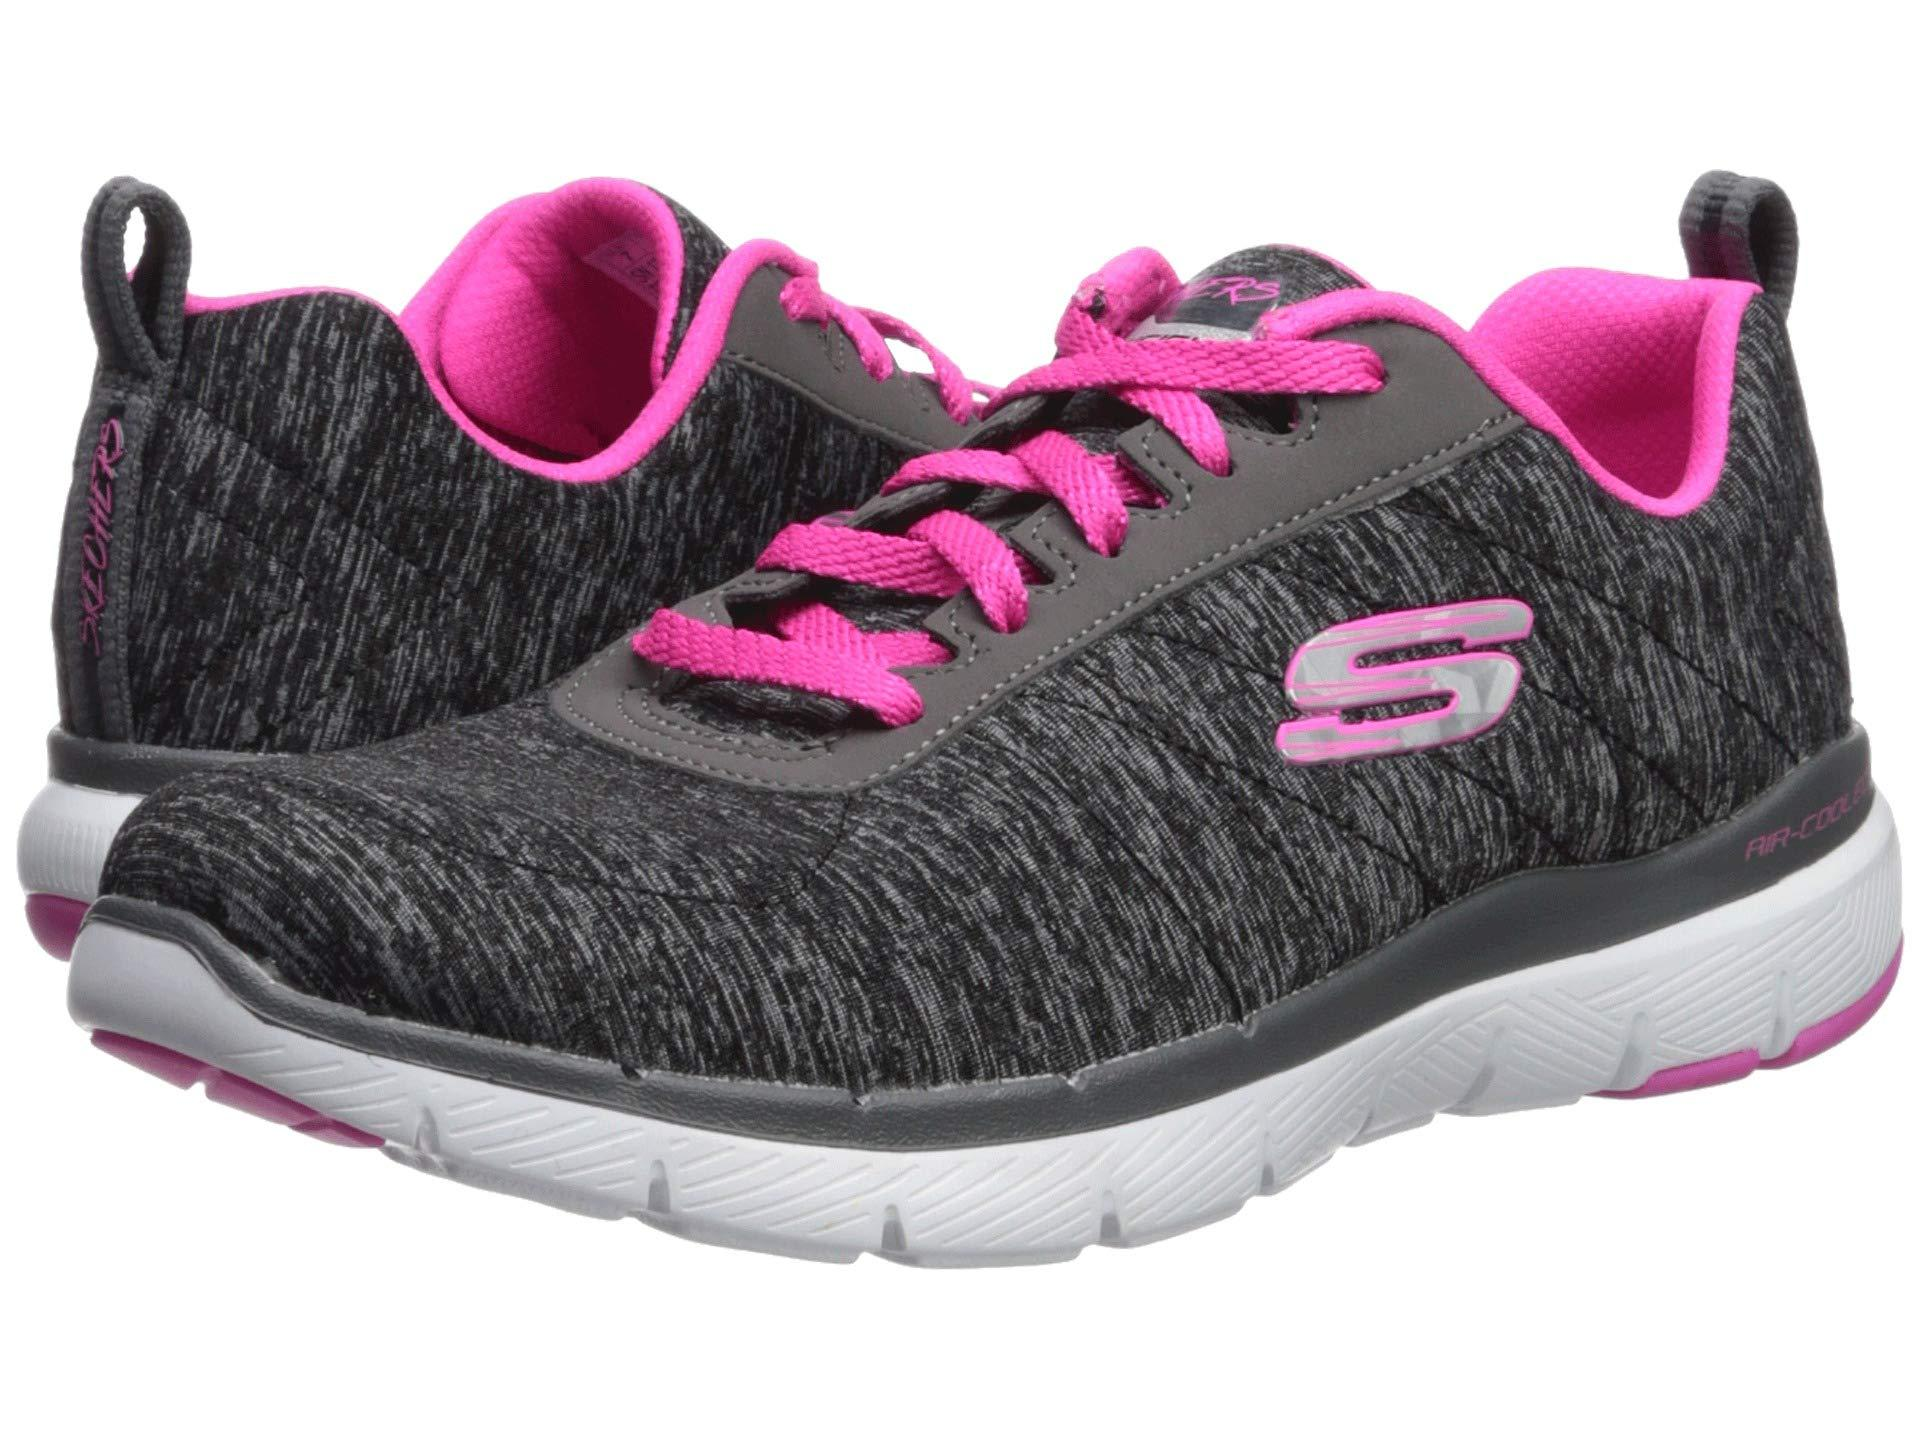 84ef6507 Skechers. Flex Appeal 3.0 - Insiders (black/hot Pink) Women's Lace Up  Casual Shoes